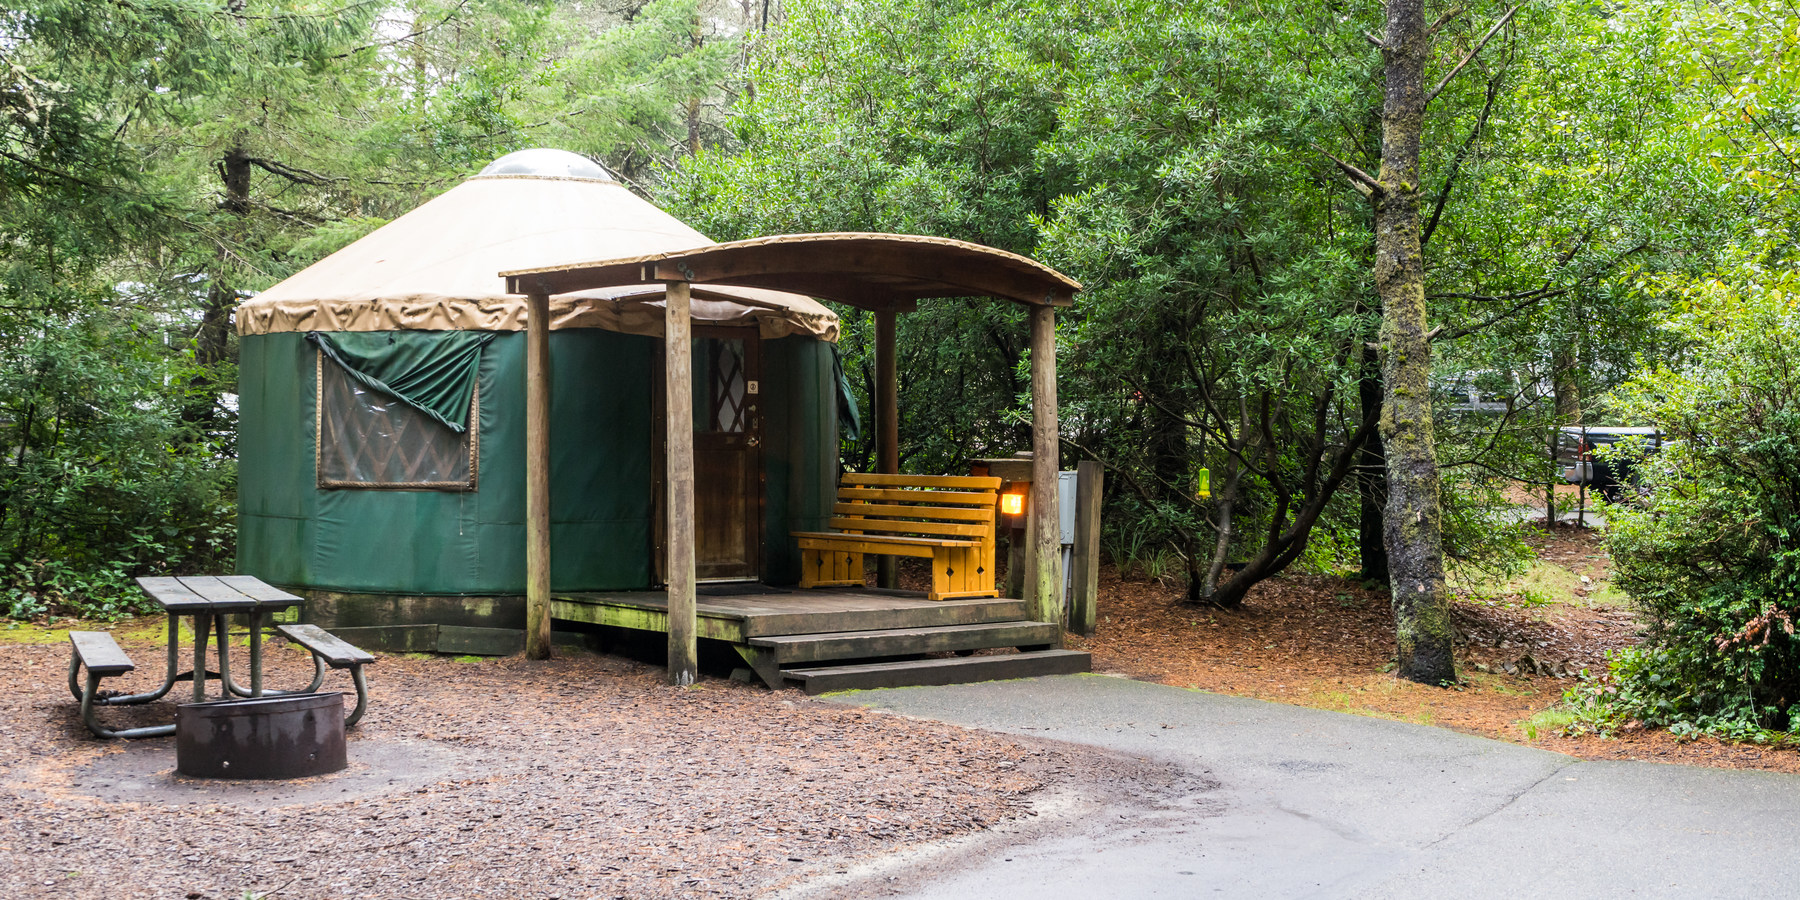 Honeyman state park campground outdoor project for Oregon state parks yurts and cabins